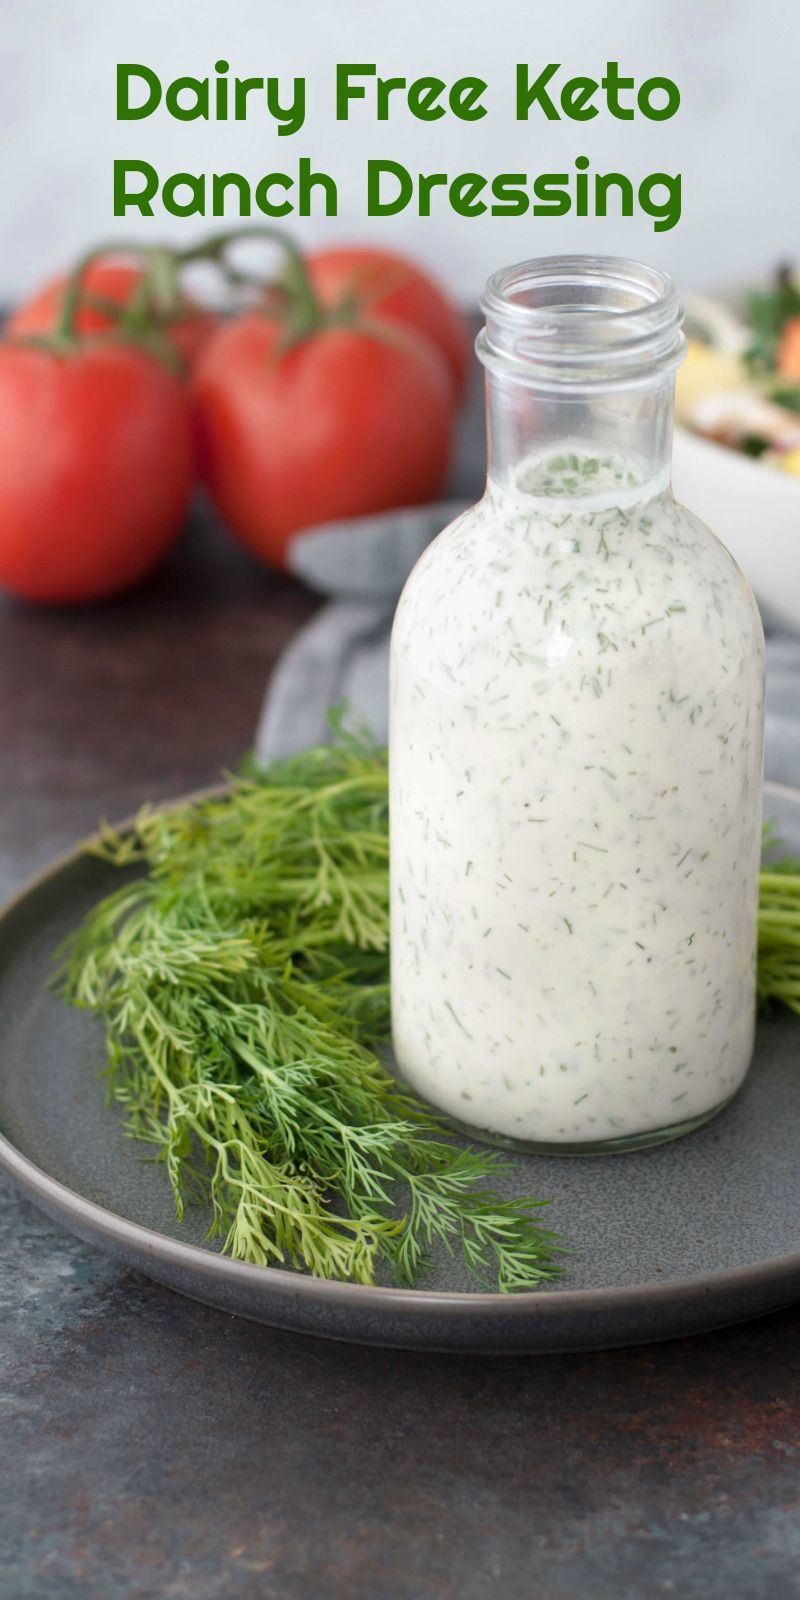 Dairy Free Keto Ranch Dressing | Peace Love and Low Carb